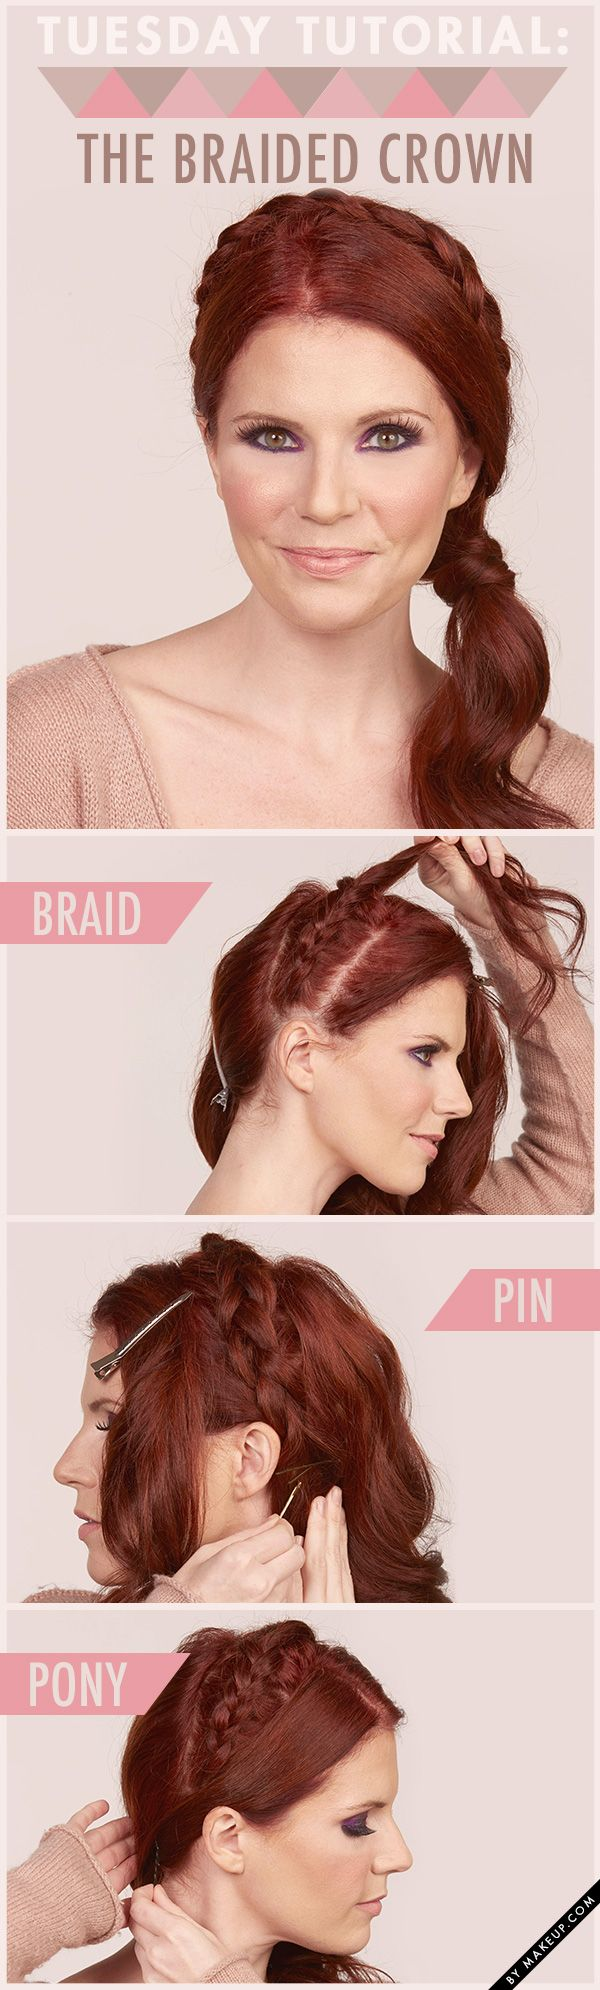 Tutorial:+The+Braided+Crown